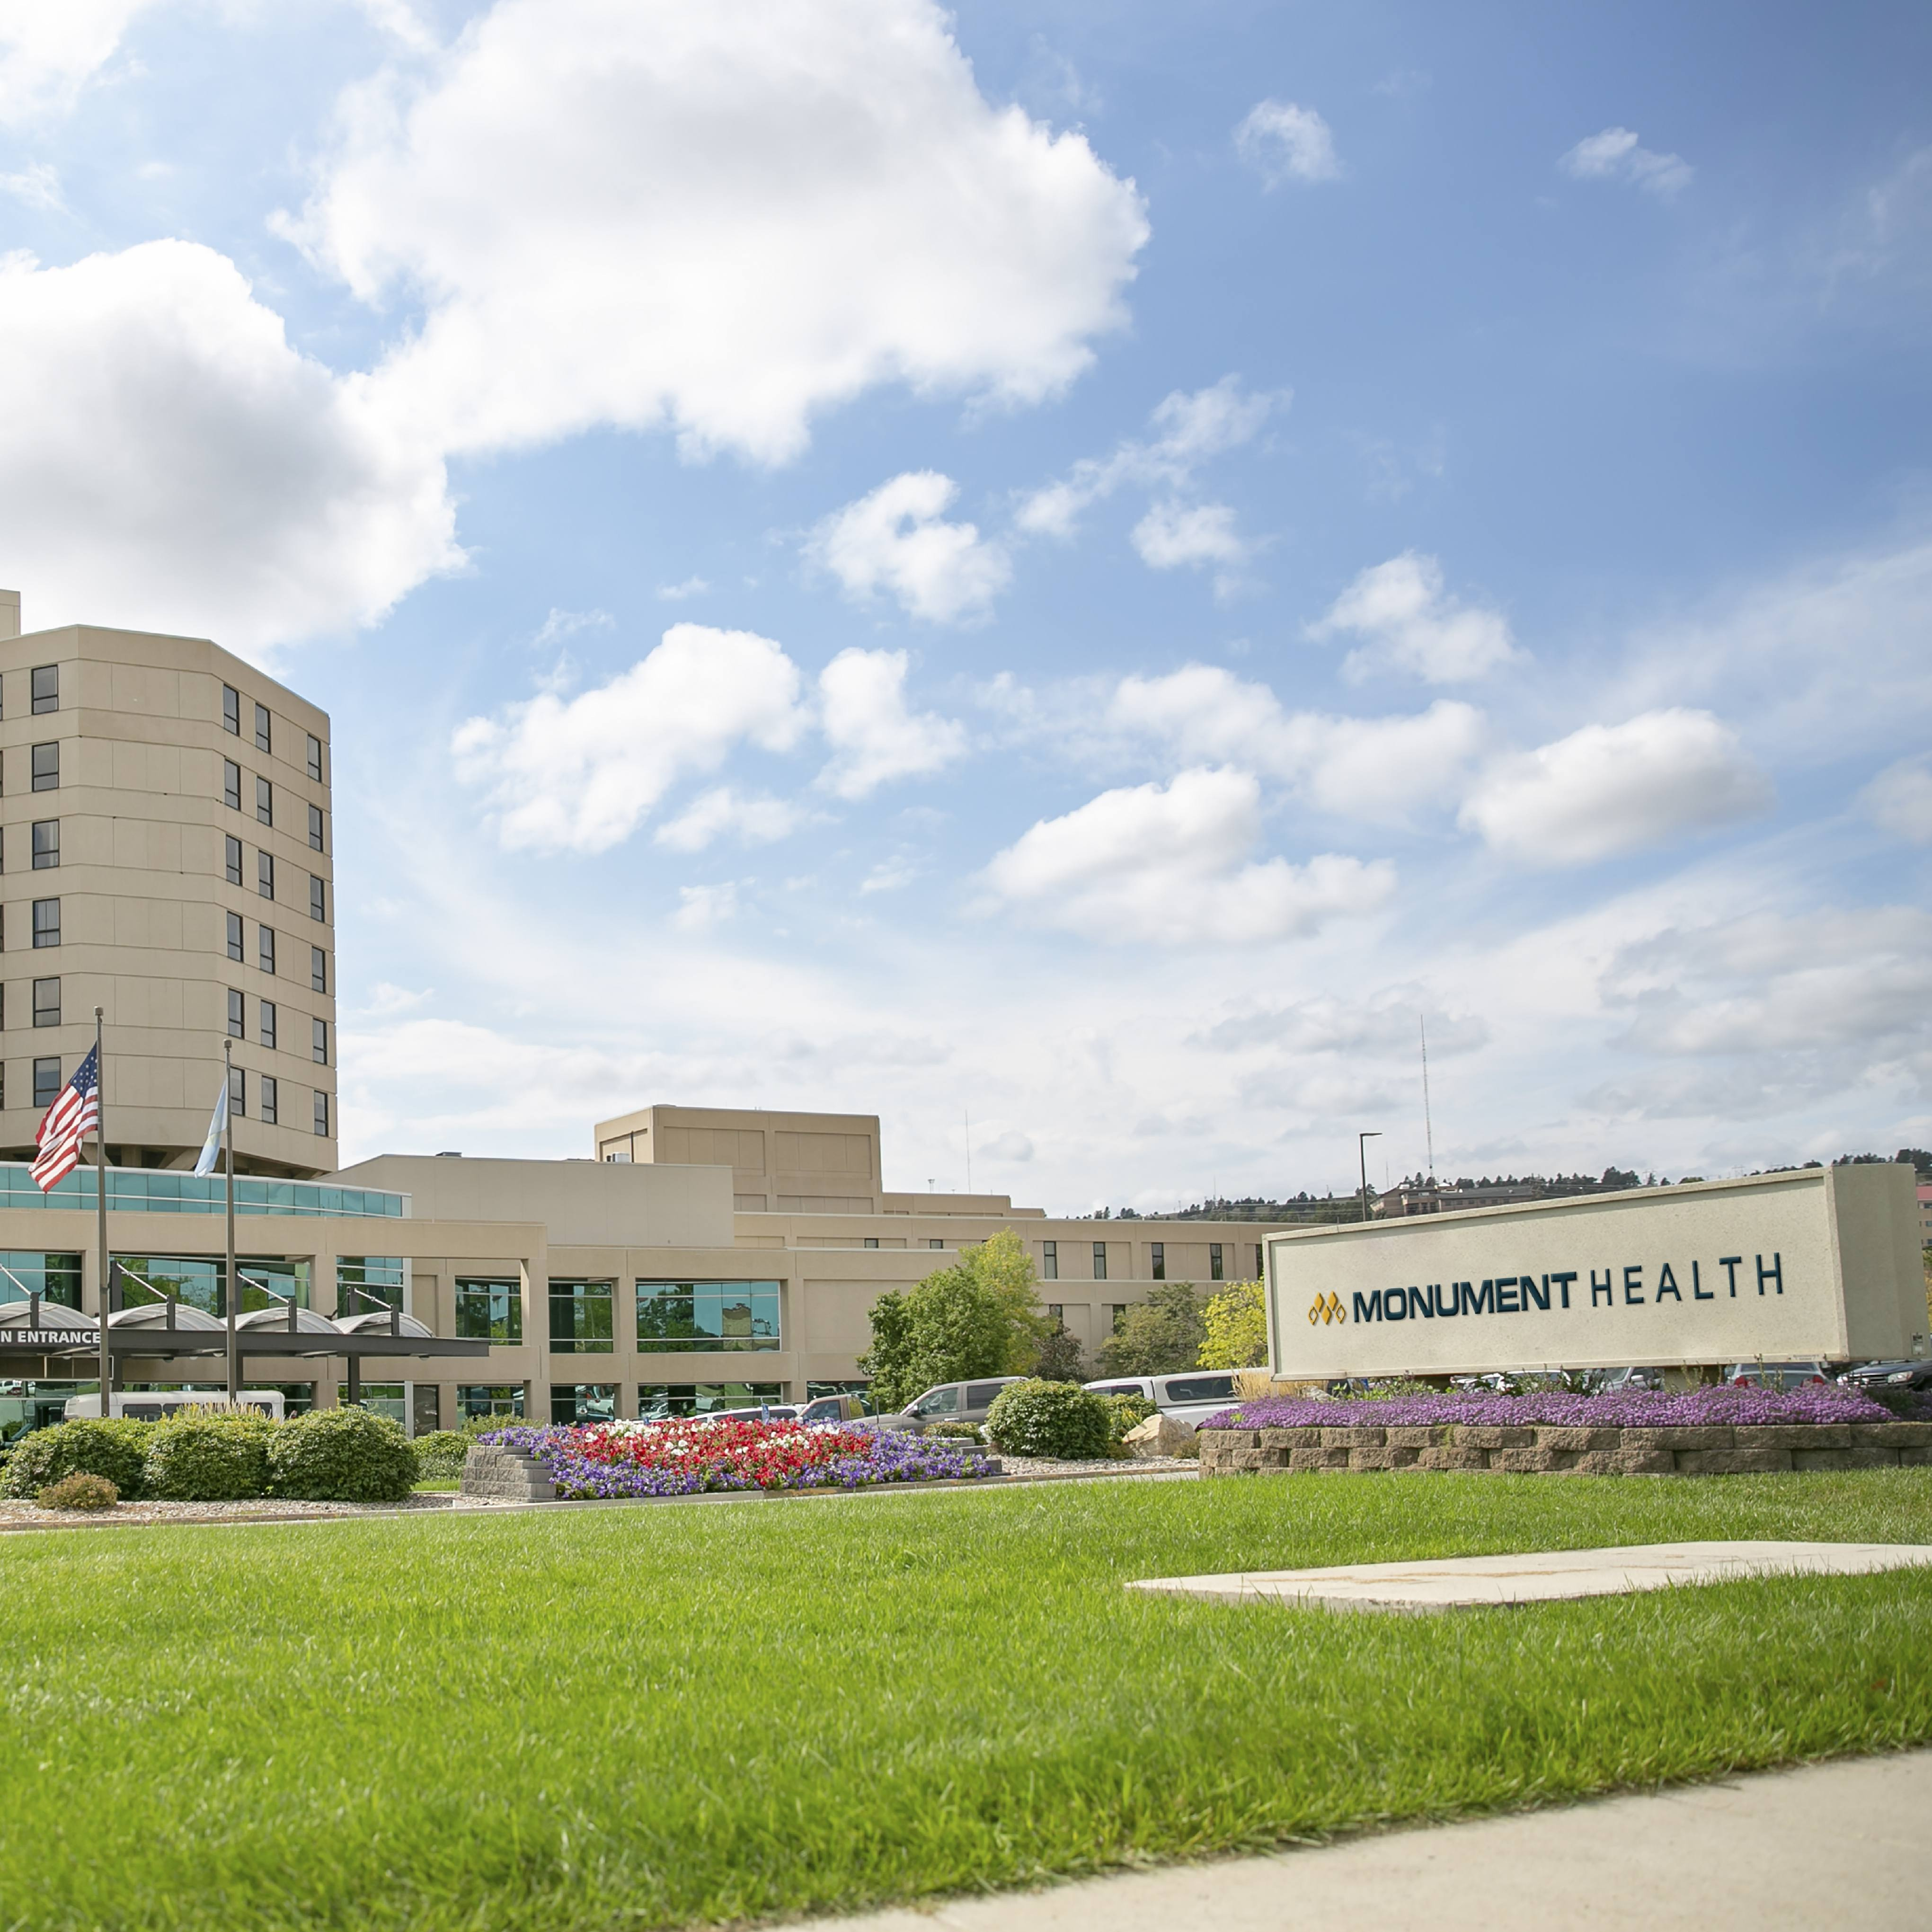 exterior image of Monument Health Buildings